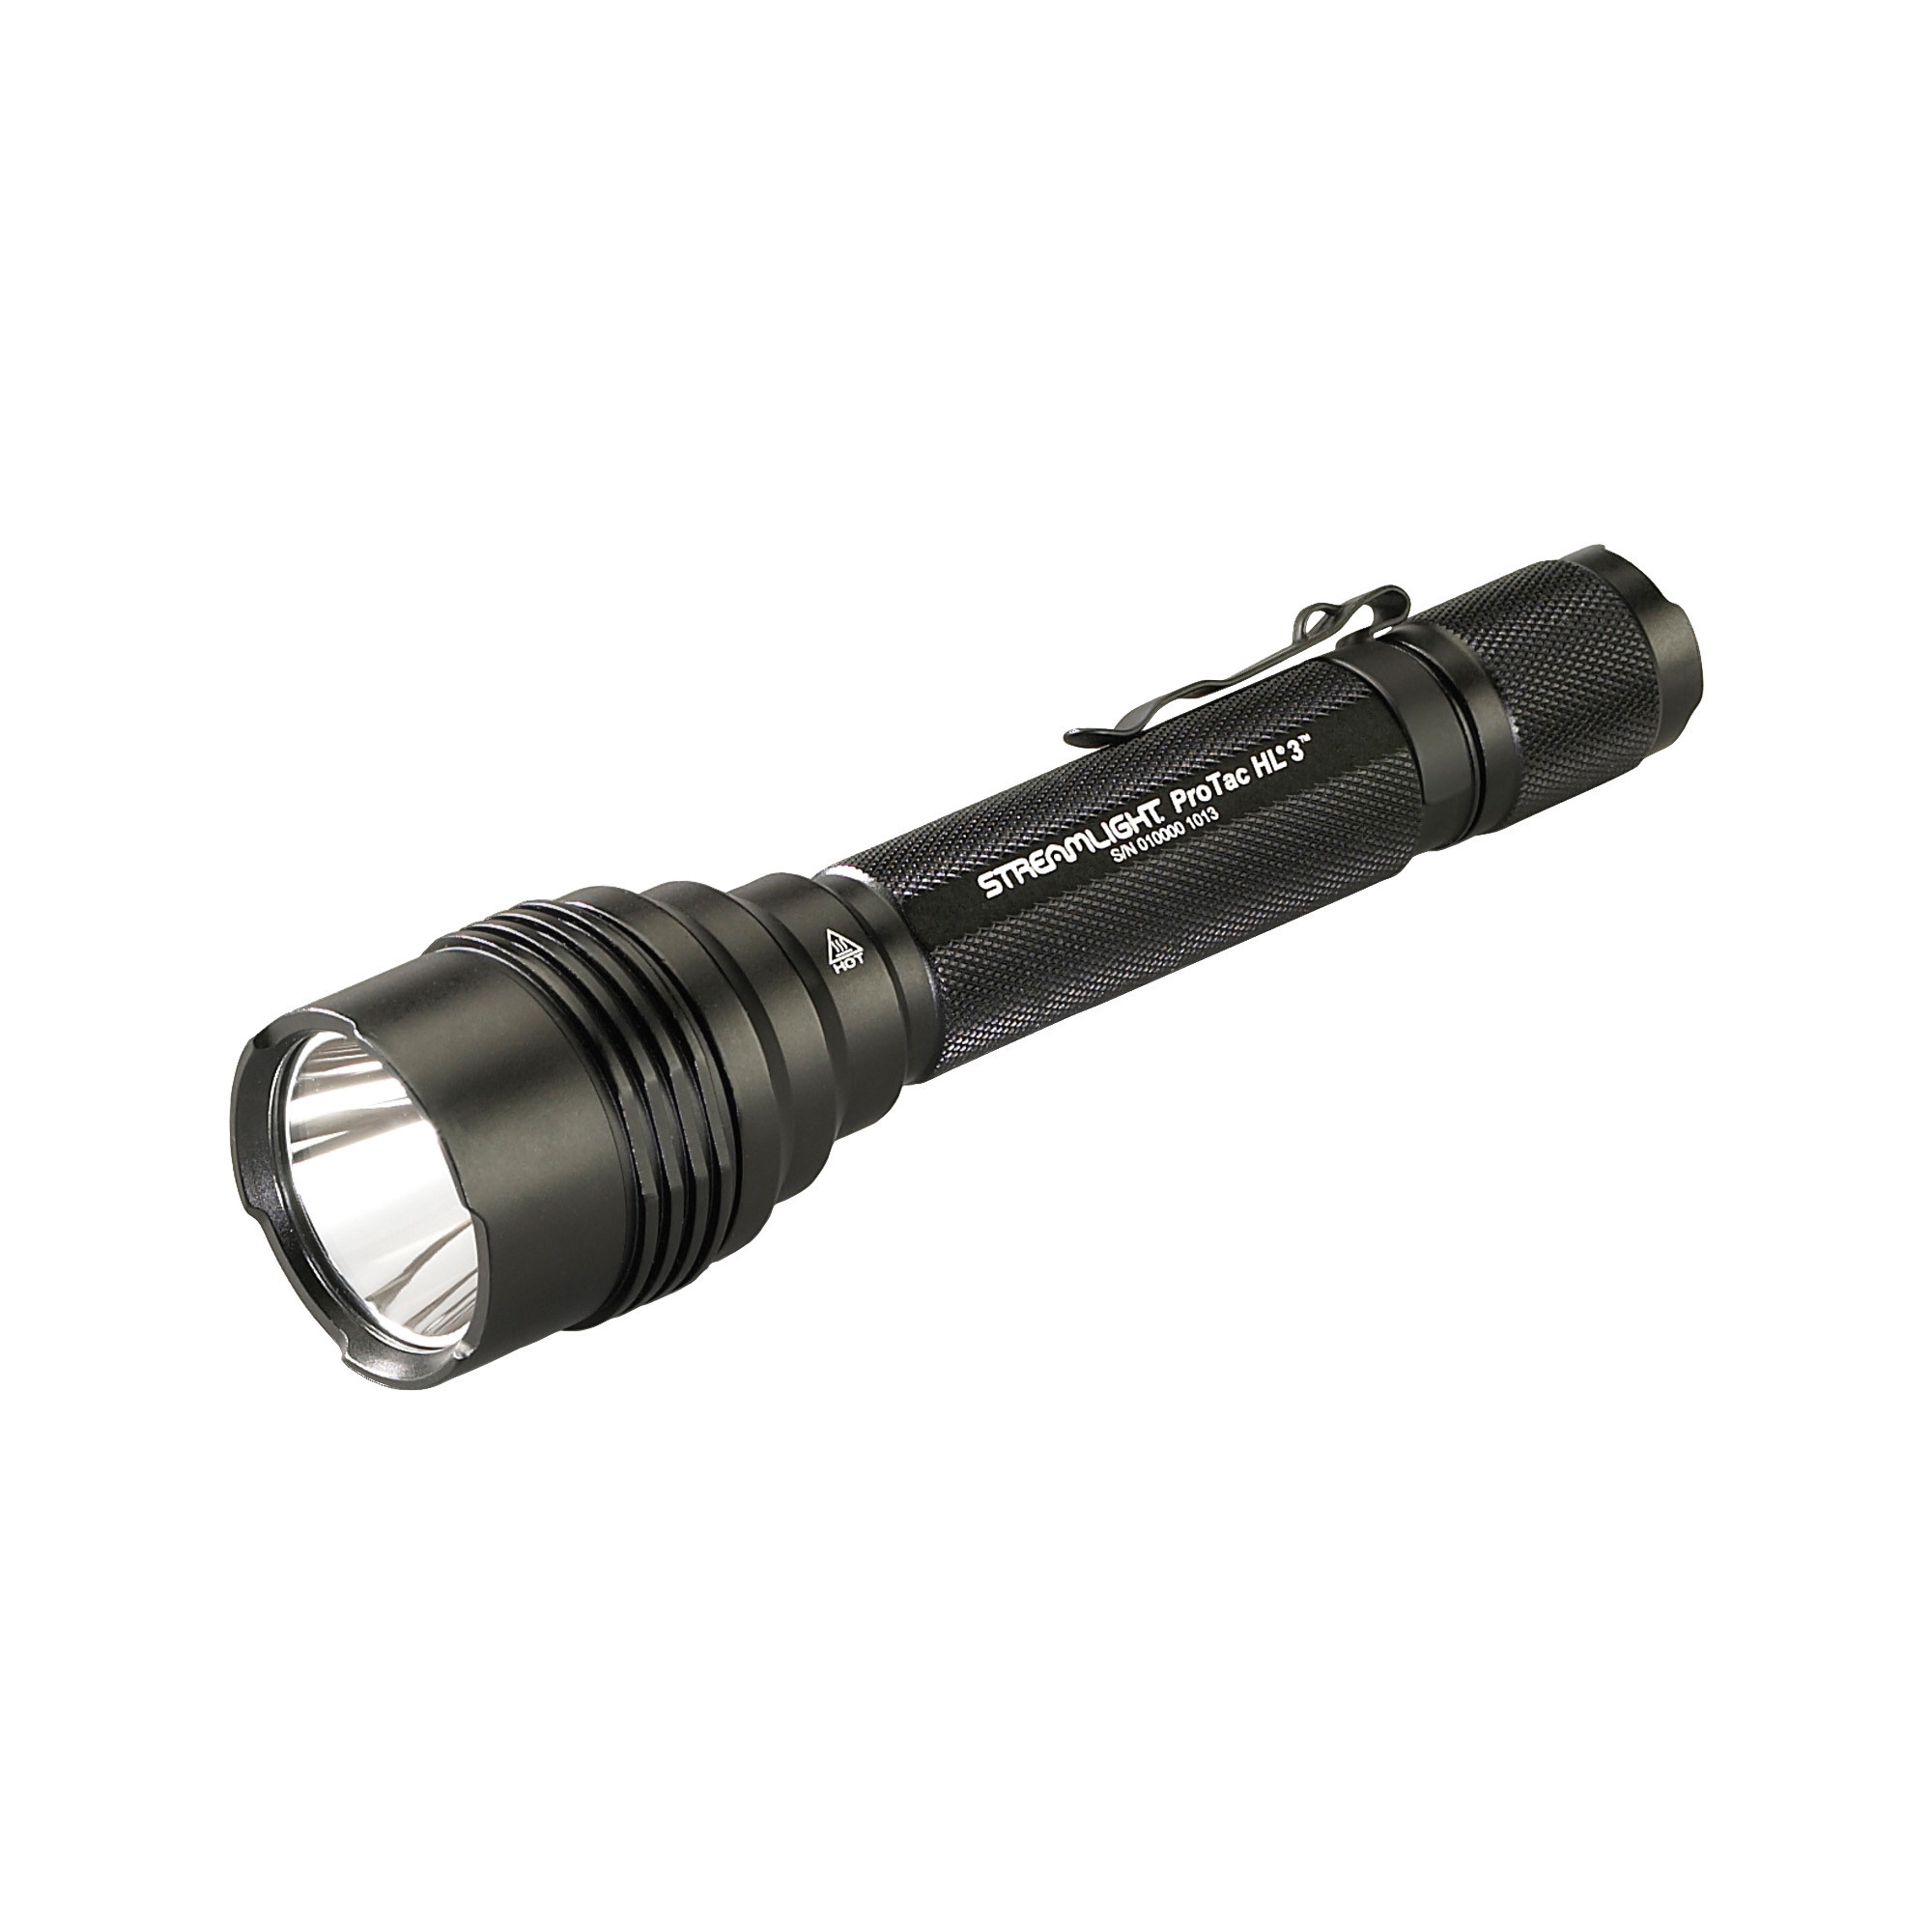 Streamlight Streamlight, HL 3 ProTac